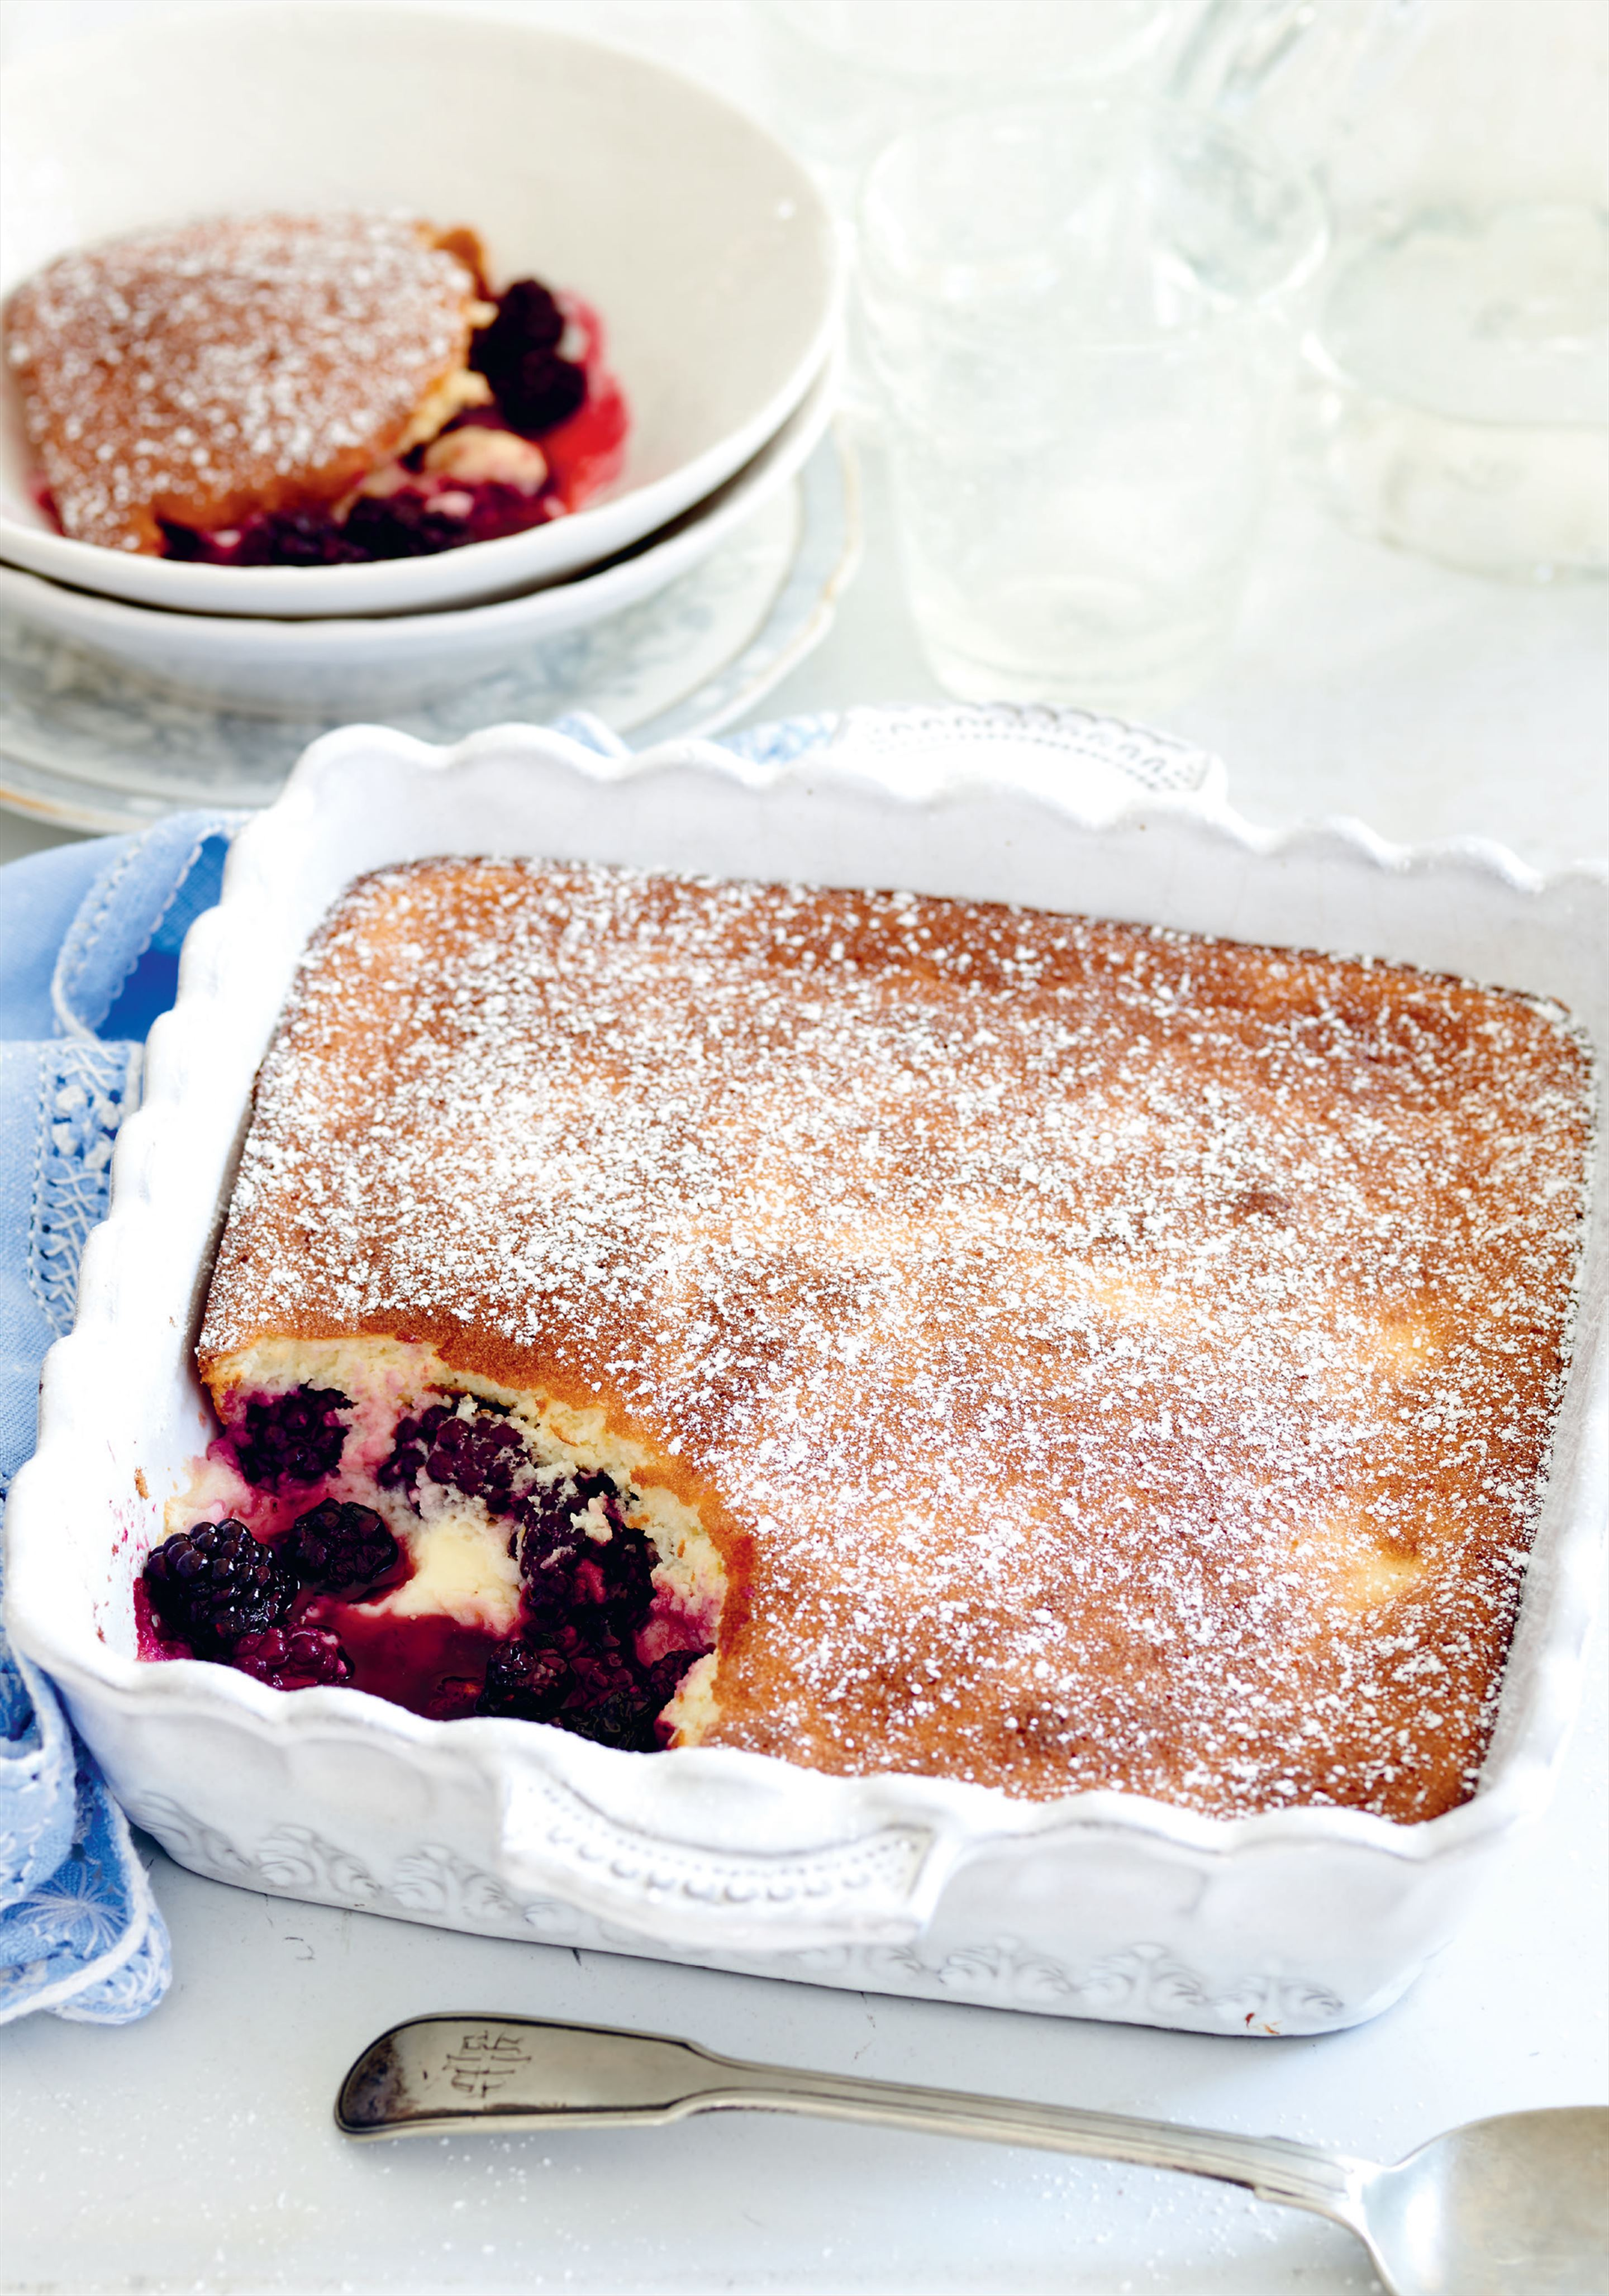 Blackberry and lemon sauce pudding